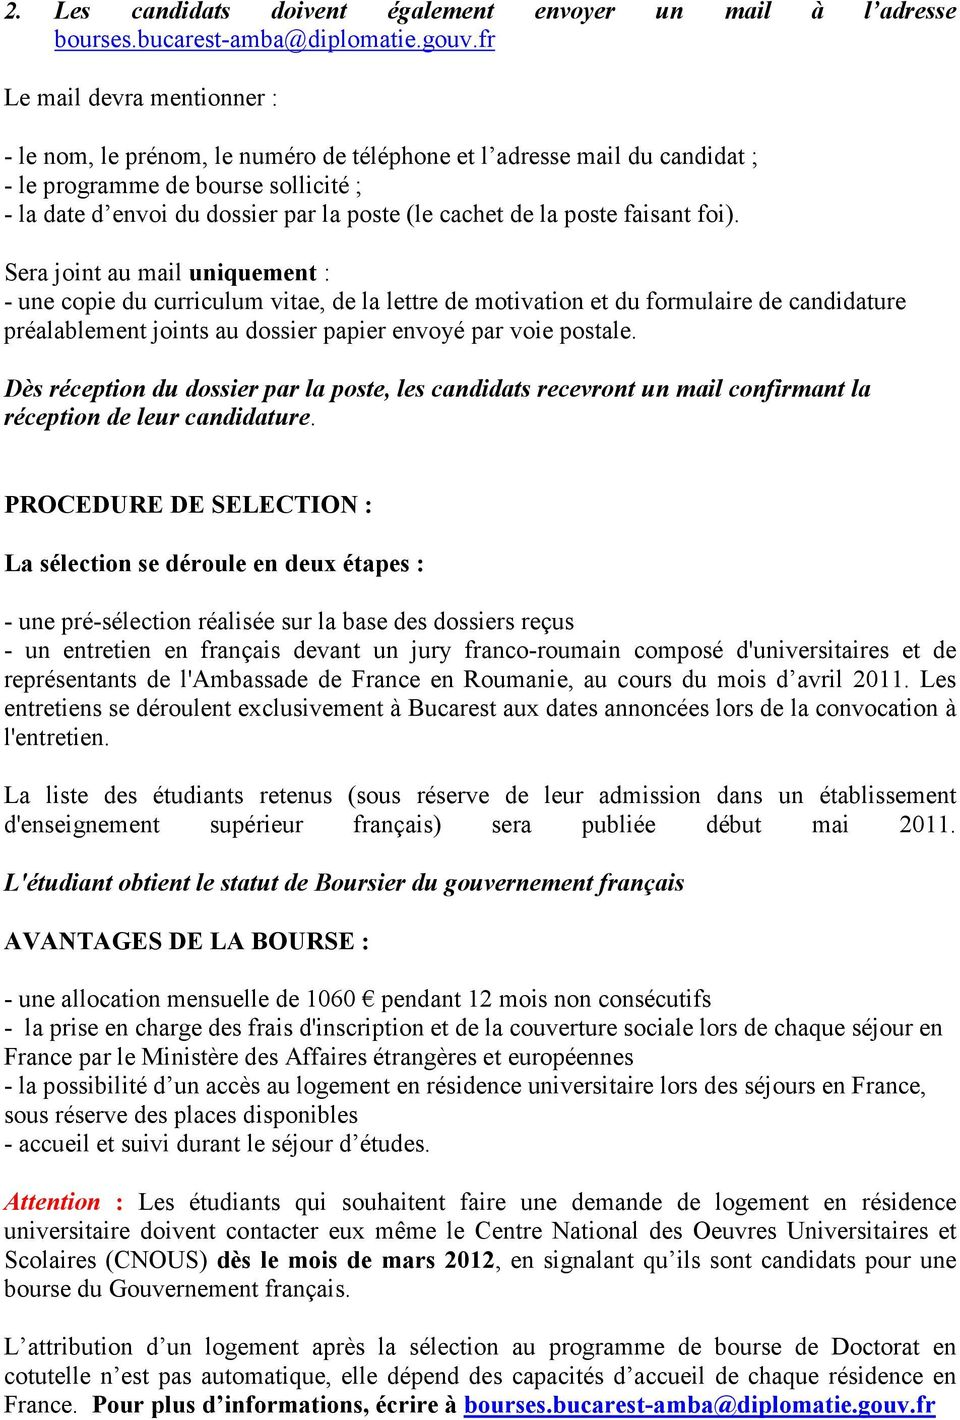 Programme Doctorat En Co Tutelle Pdf Free Download